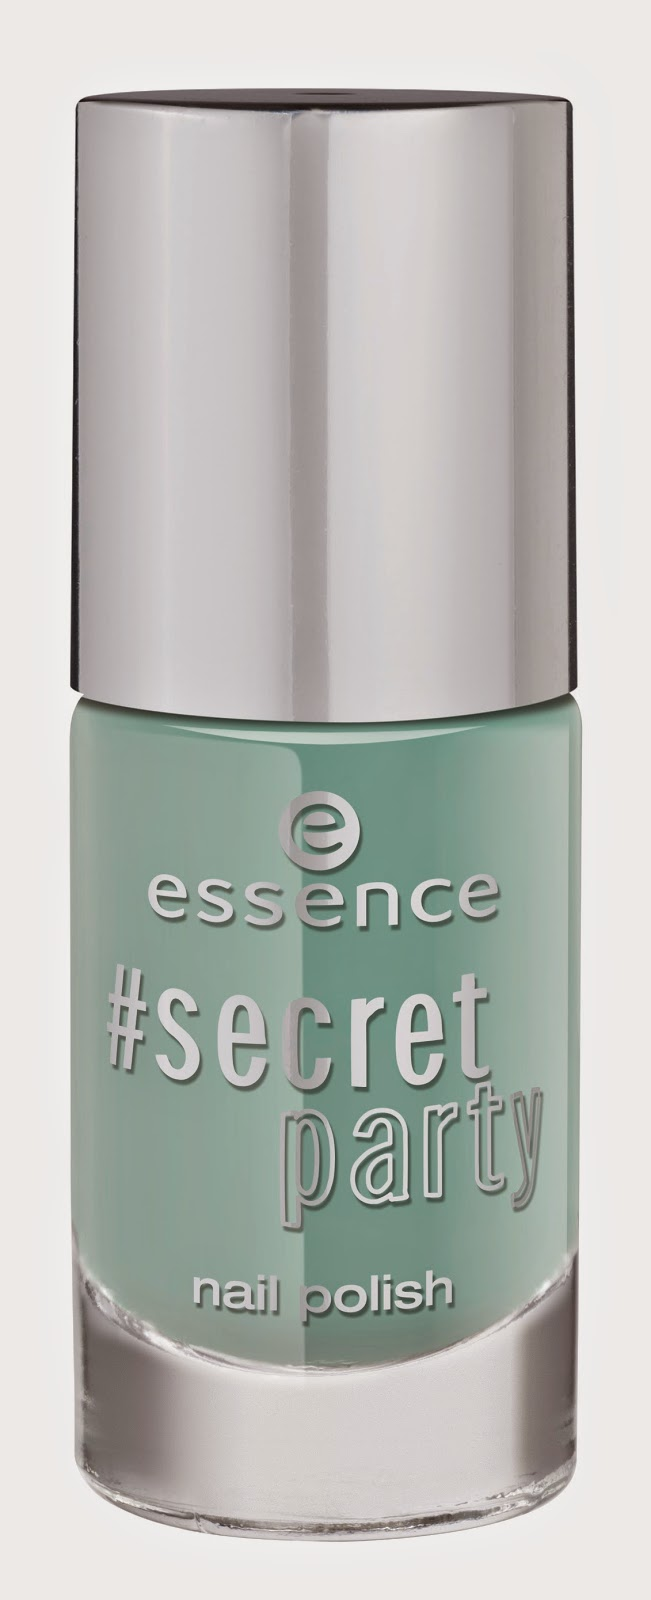 "Preview: essence trend edition ""#secret party"" - essence #secret party – Nail Polish - www.annitschkasblog.de"